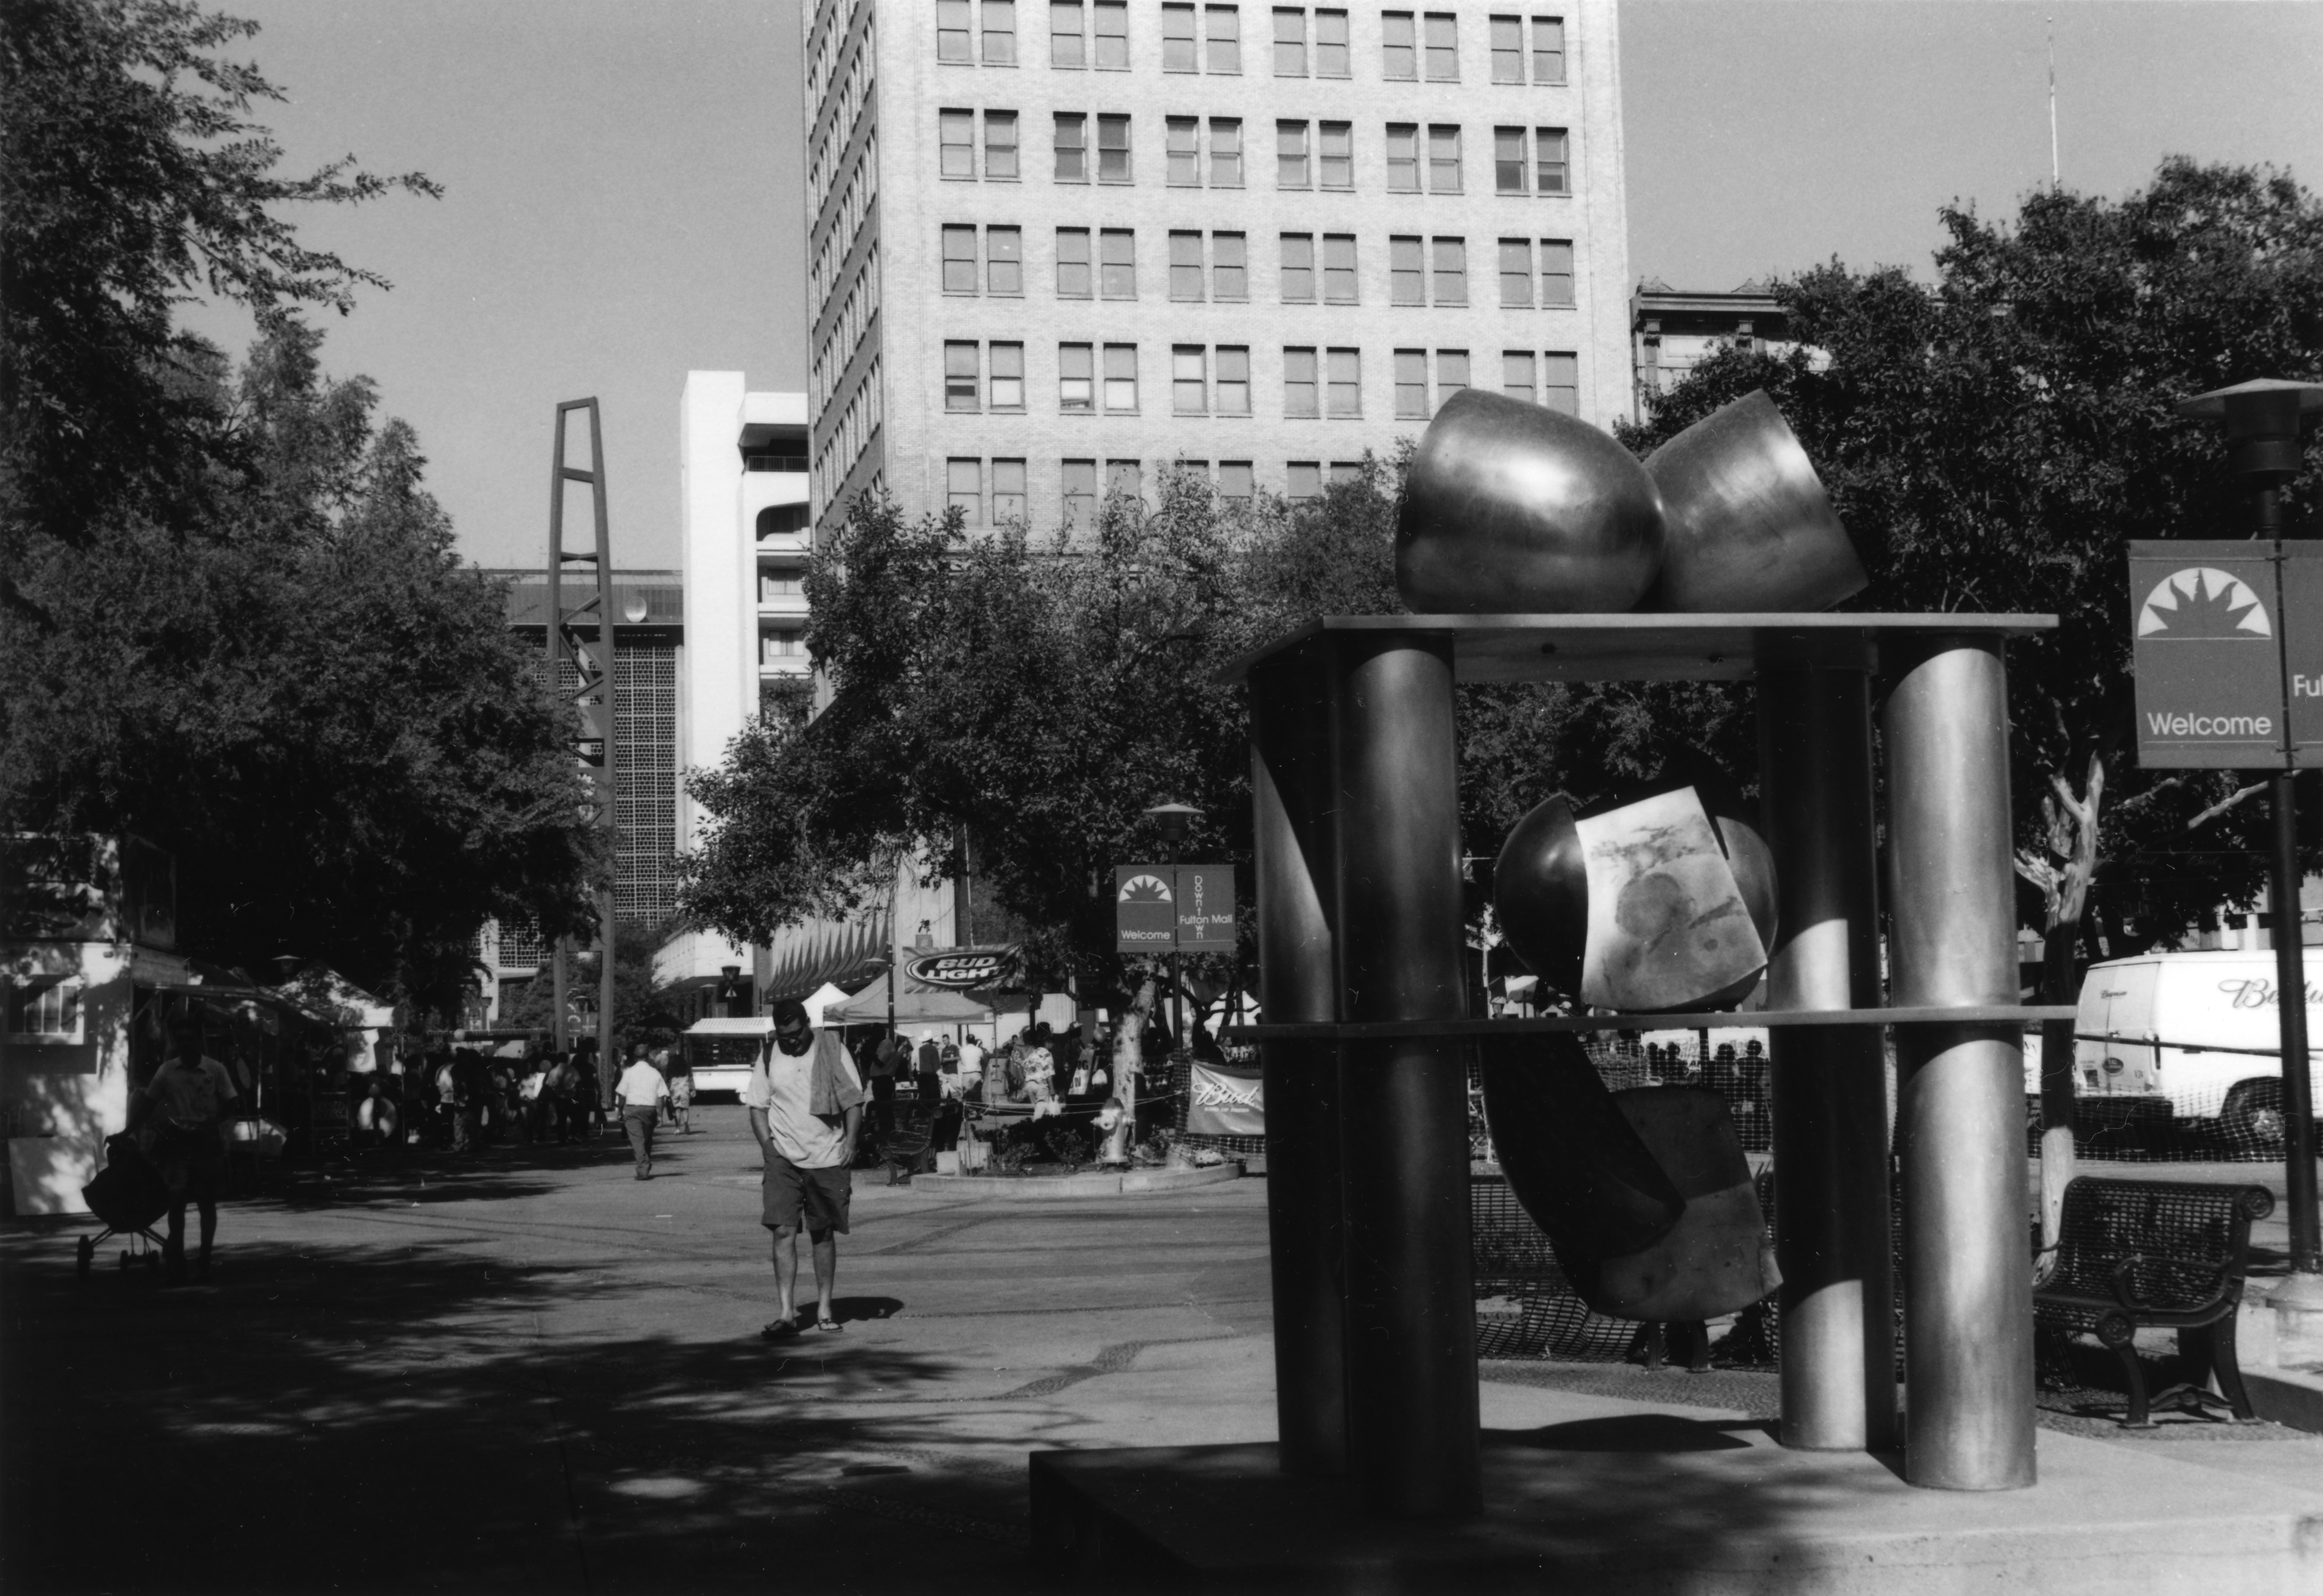 LINK: Fulton Mall image